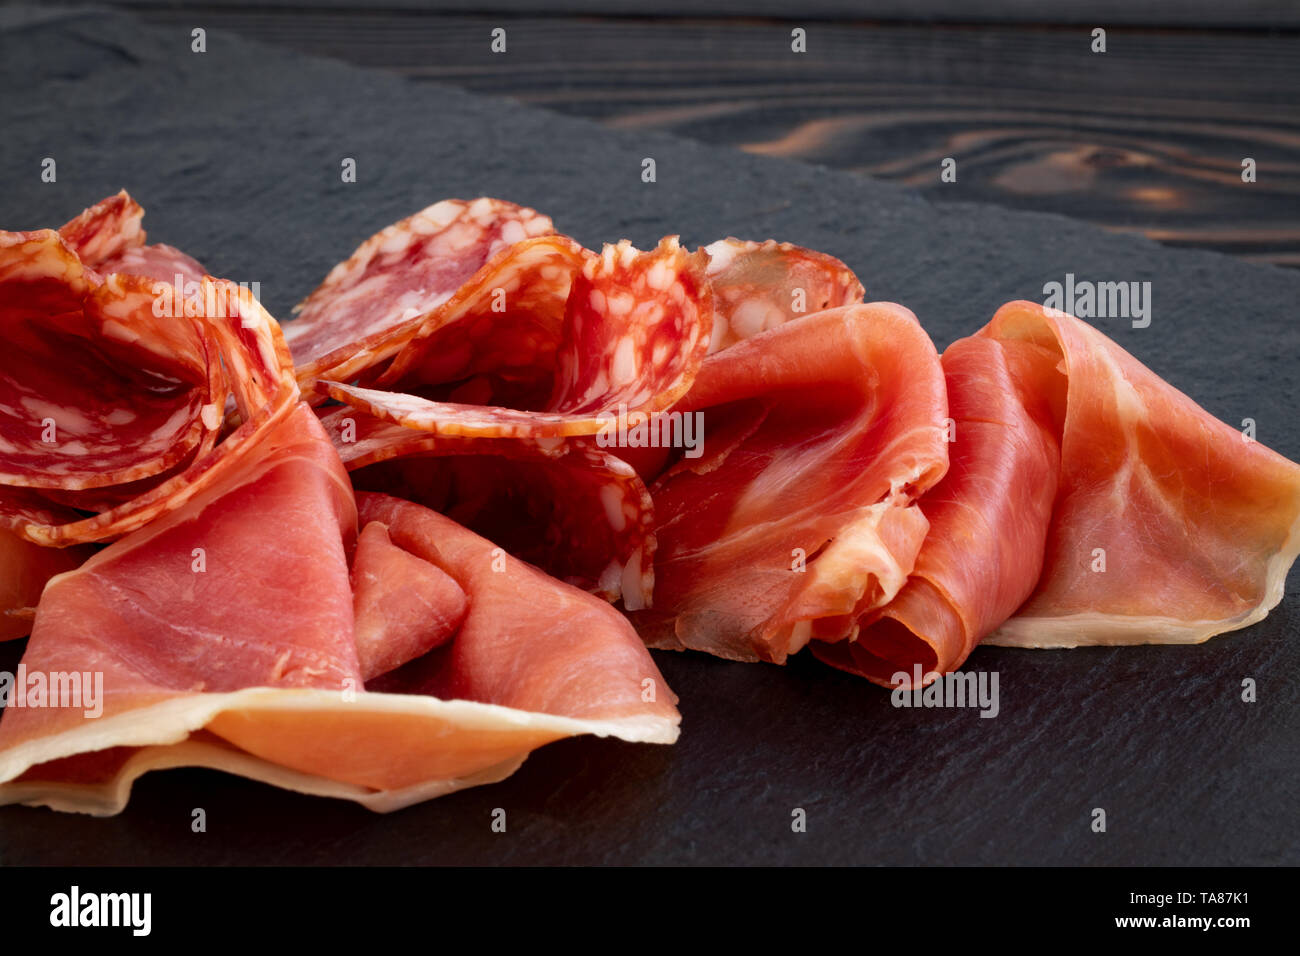 Italian prosciutto crudo or spanish jamon and sausages. Raw ham on stone cutting board. - Stock Image